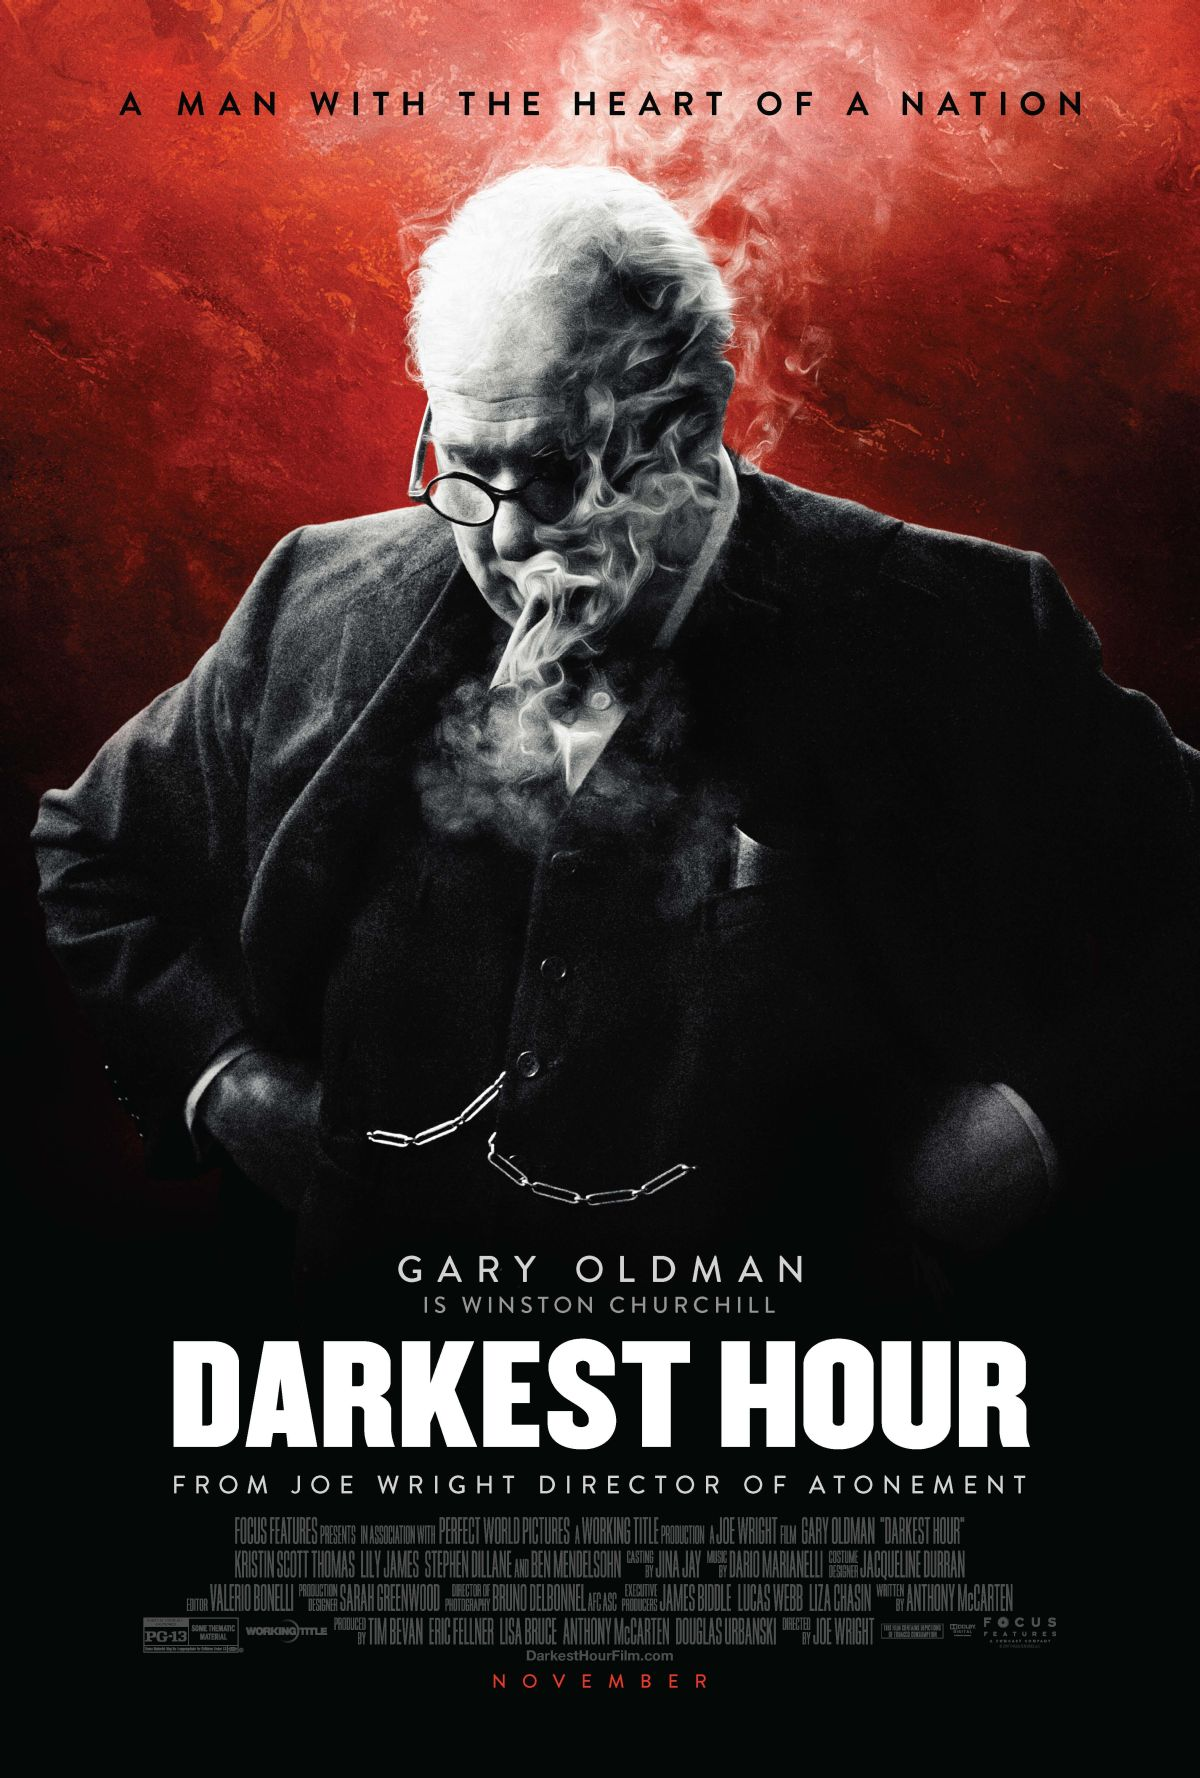 The New Darkest Hour Poster Featuring Gary Oldman as